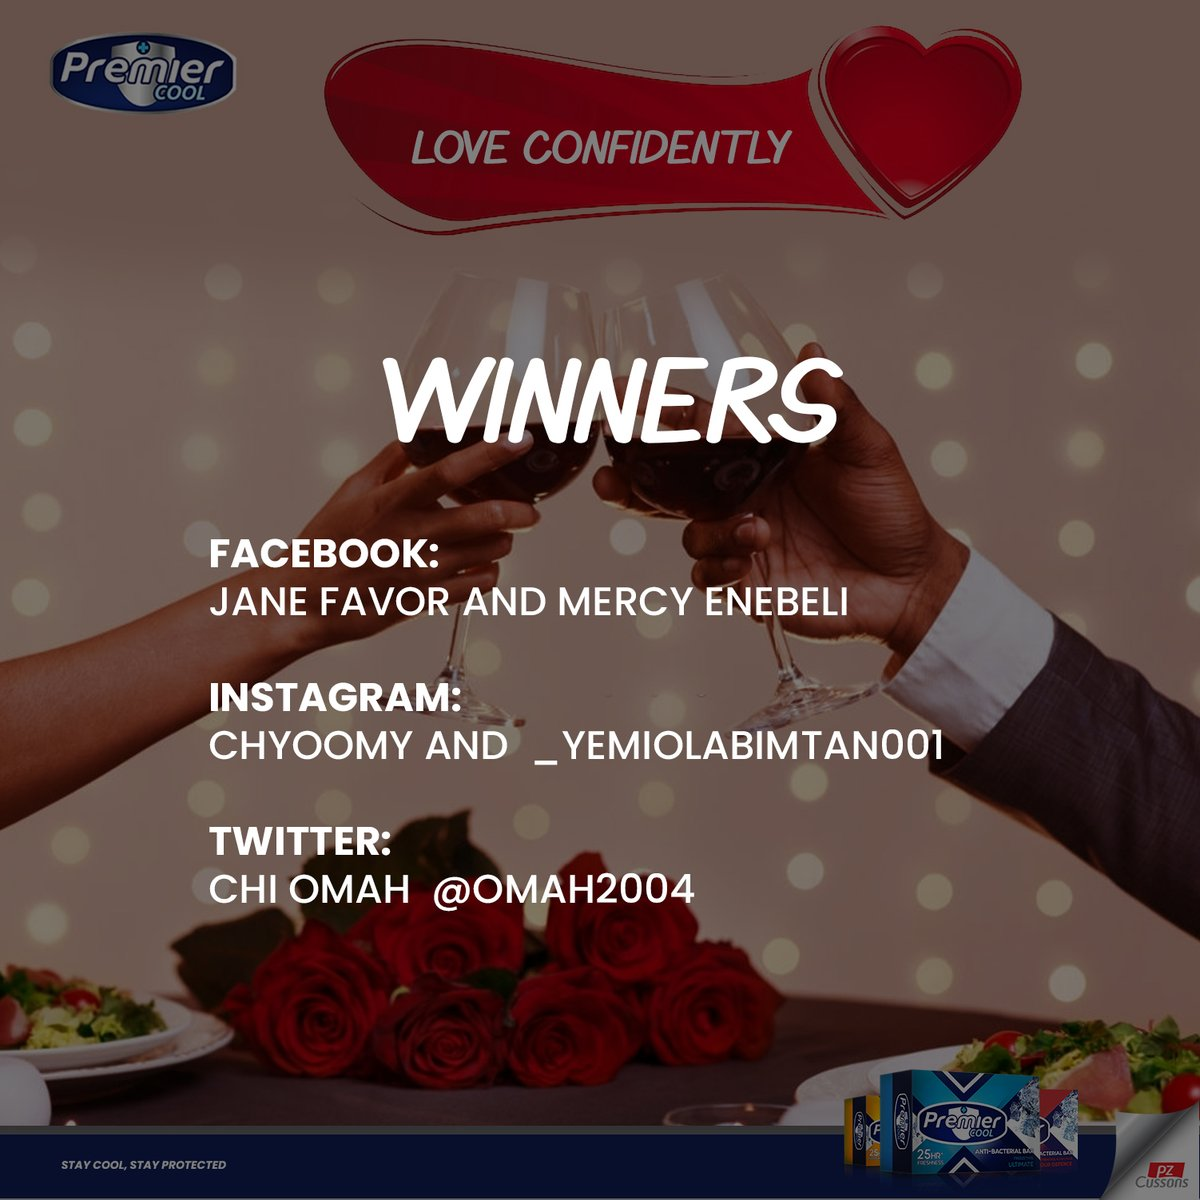 What's good cool gang!  Here are winners from our valentine trivia. Congratulations guys. Please send in your details to get rewarded.  Stay Cool Stay Premier Cool  #StayProtected #Winners #Love #Valentine #StayPremierCool